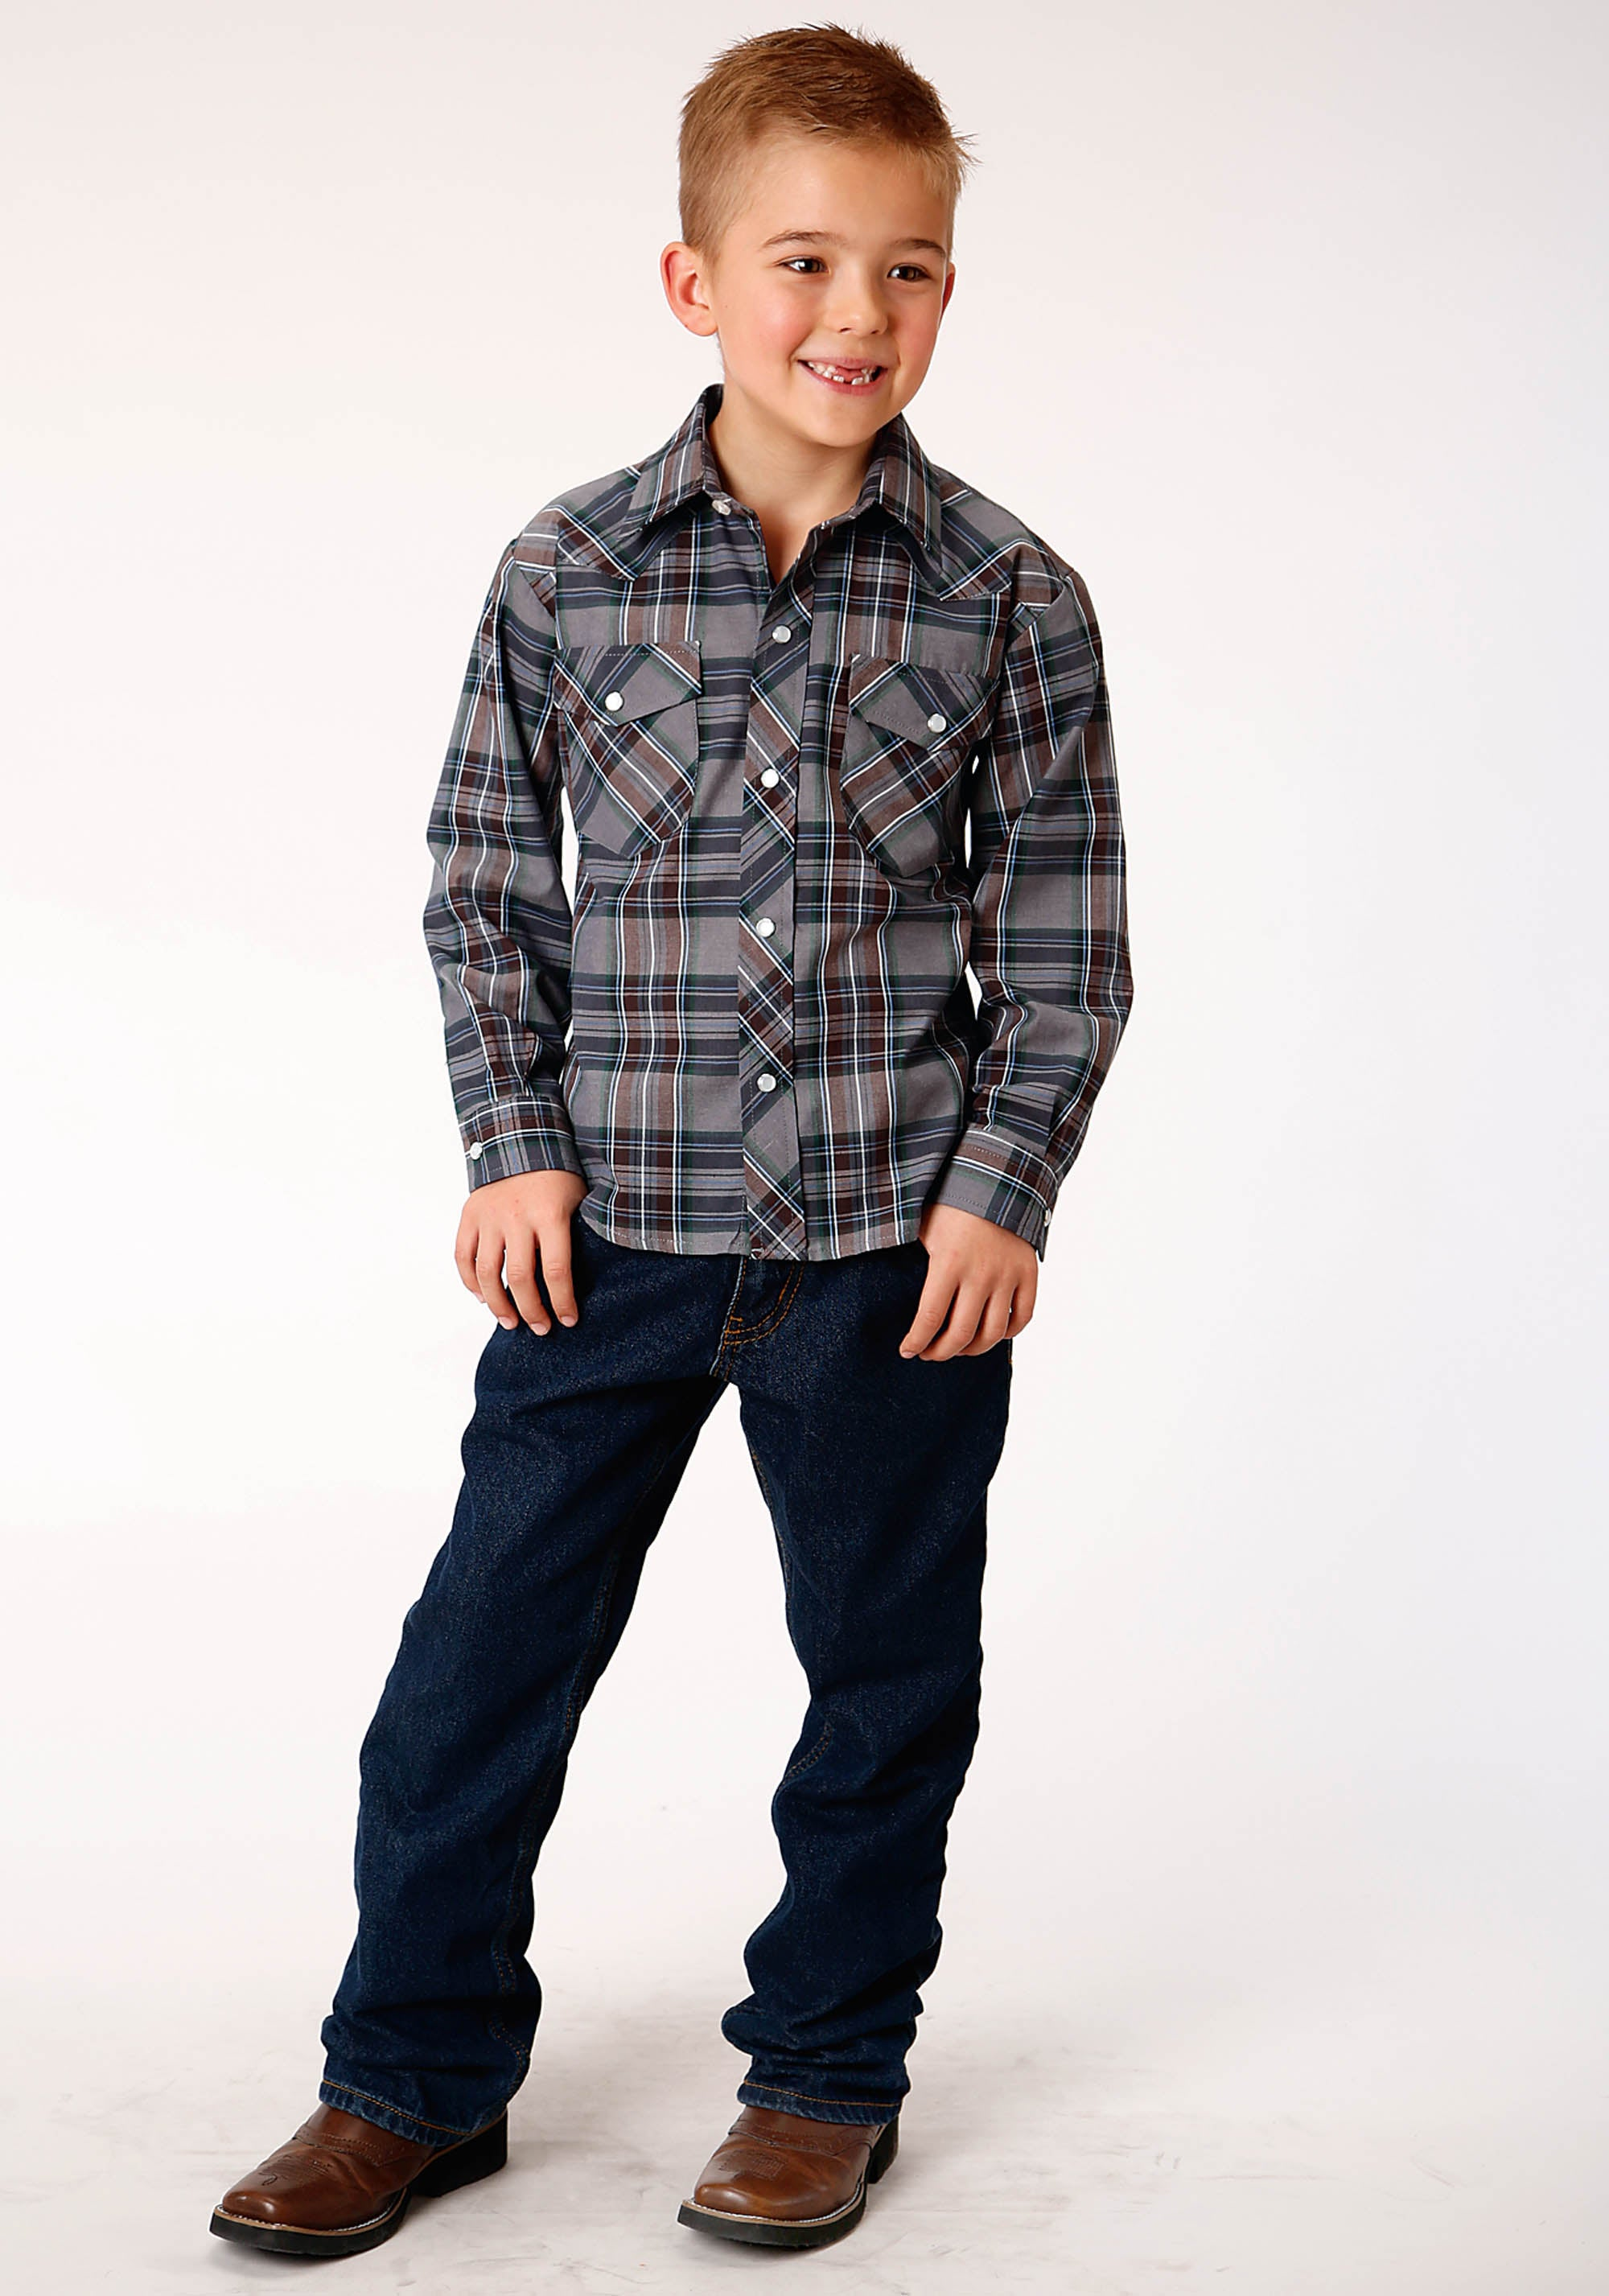 POLY COTTON BOYS GREY 00308 GREY, NAVY & WHITE PLAID 55/45 PLAIDS